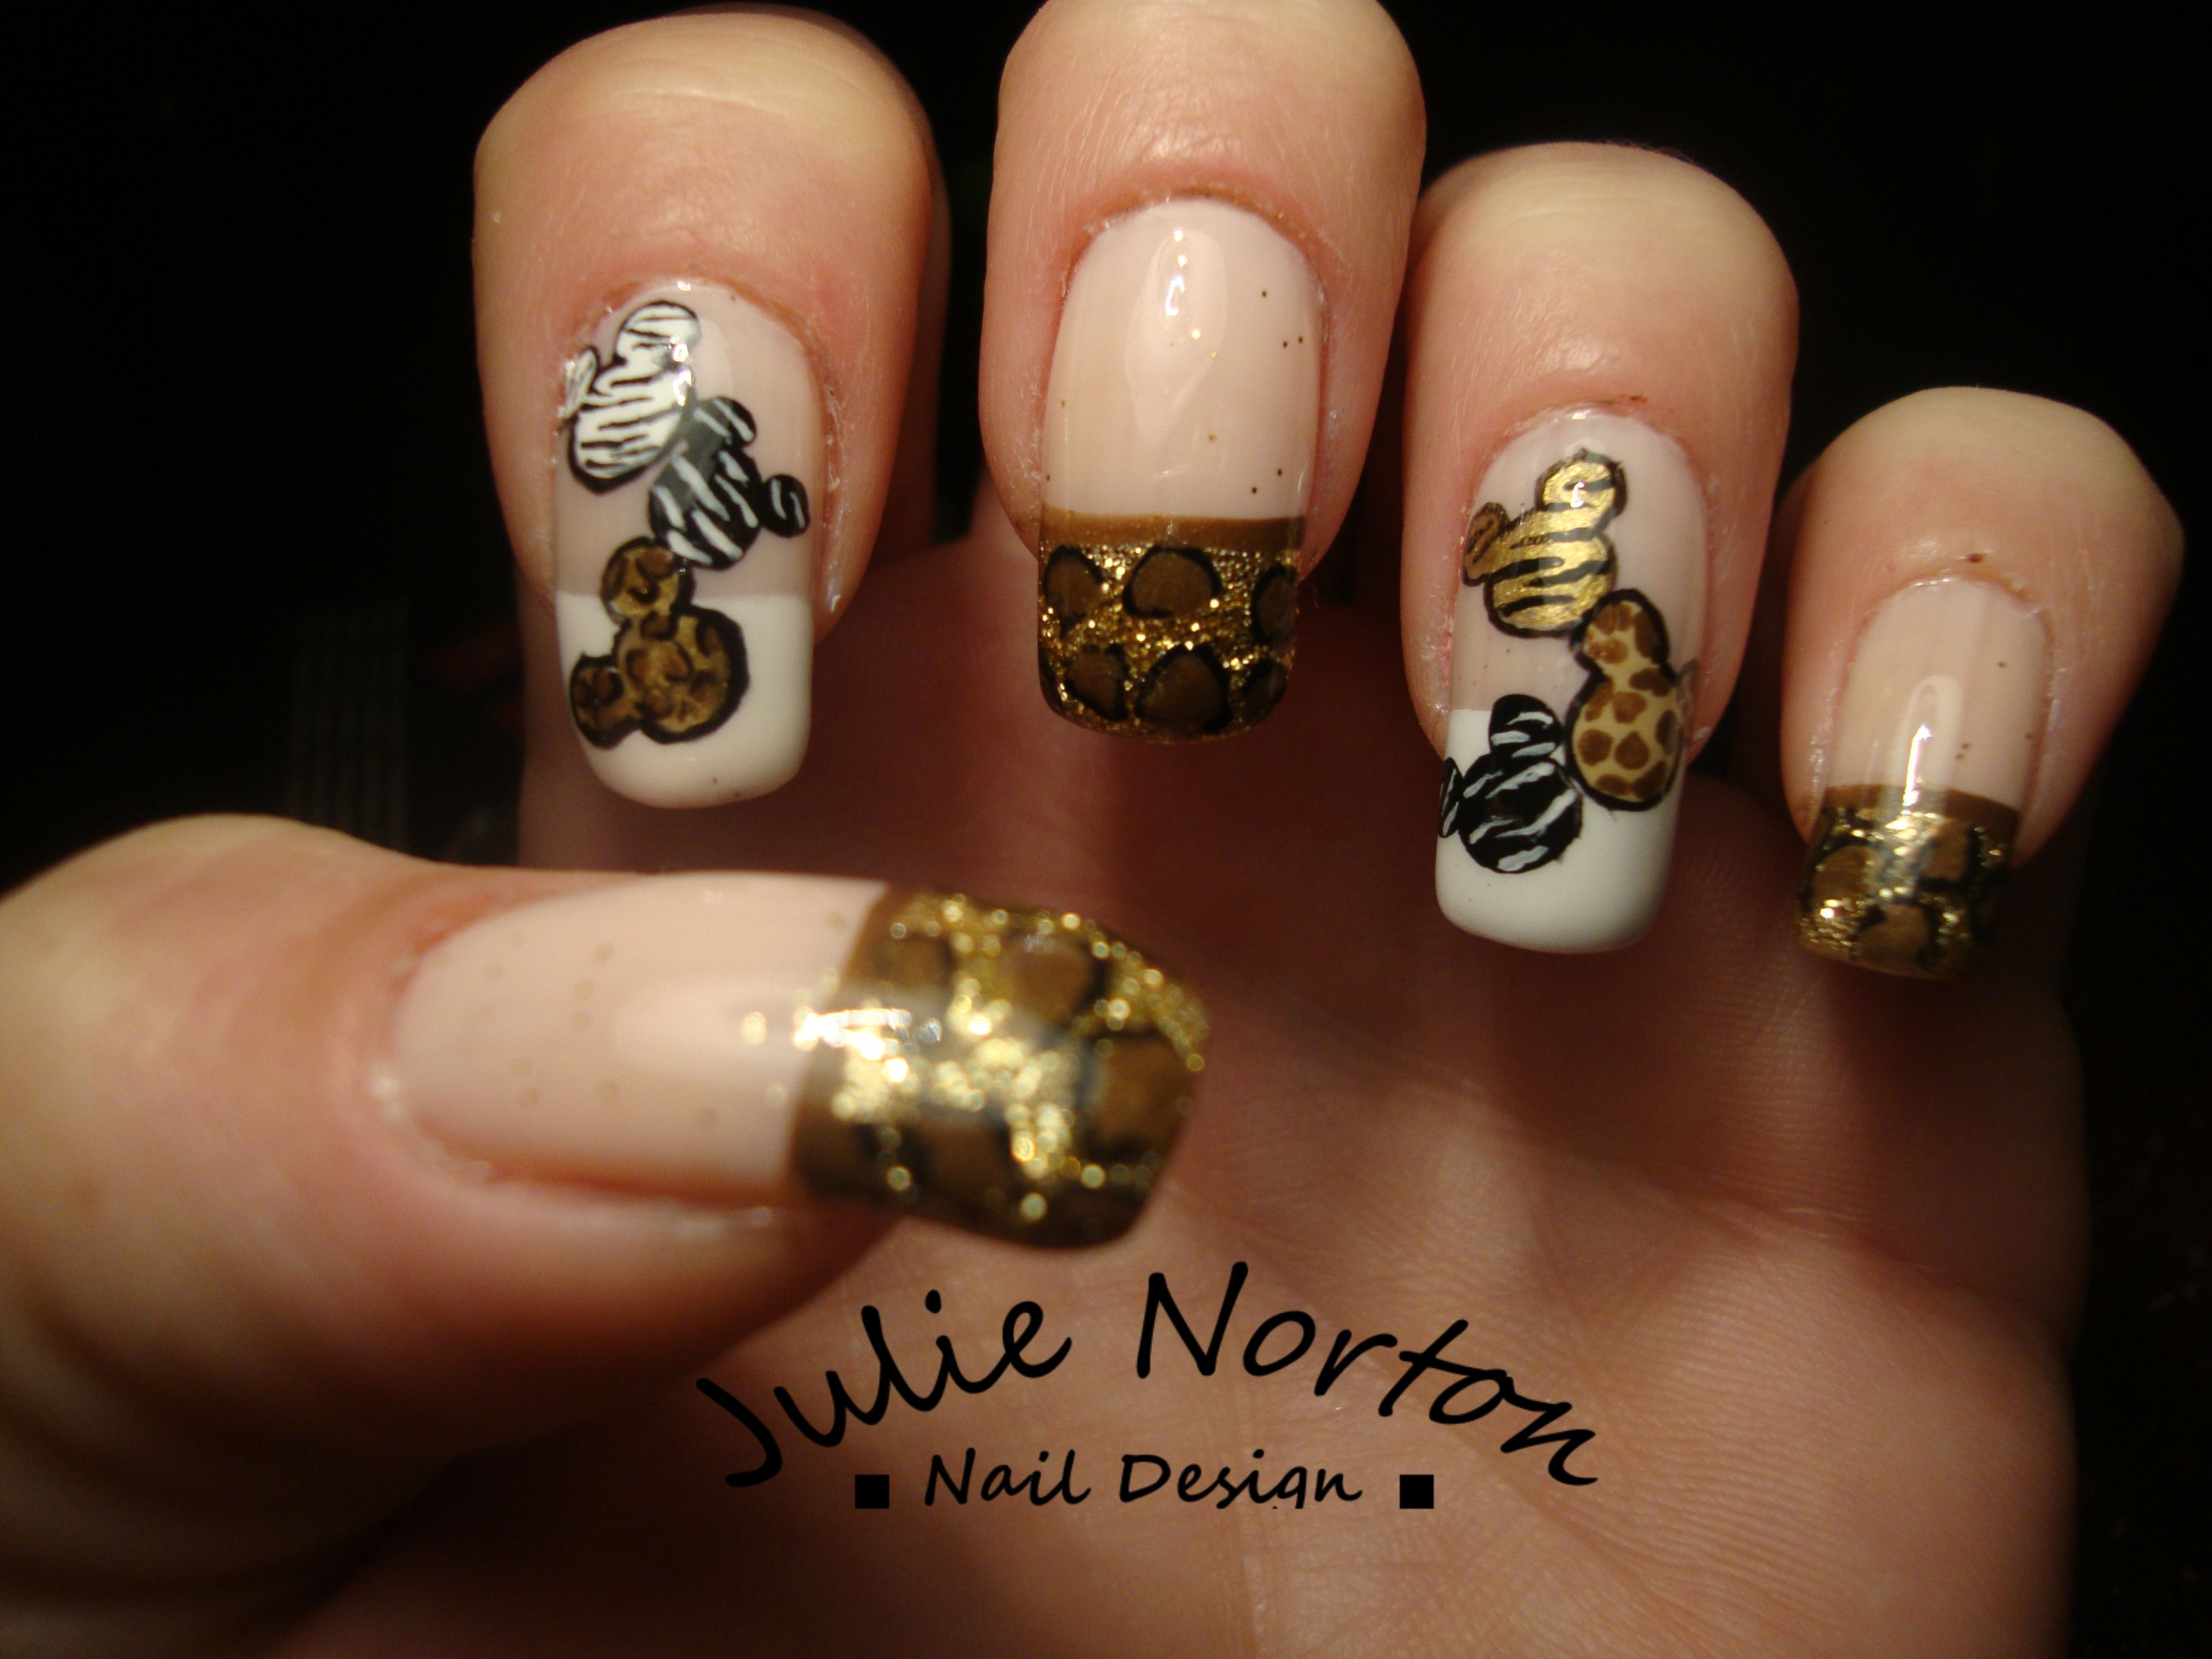 Safari Mickey Mouse Nails | Some of my Nail Art | Pinterest